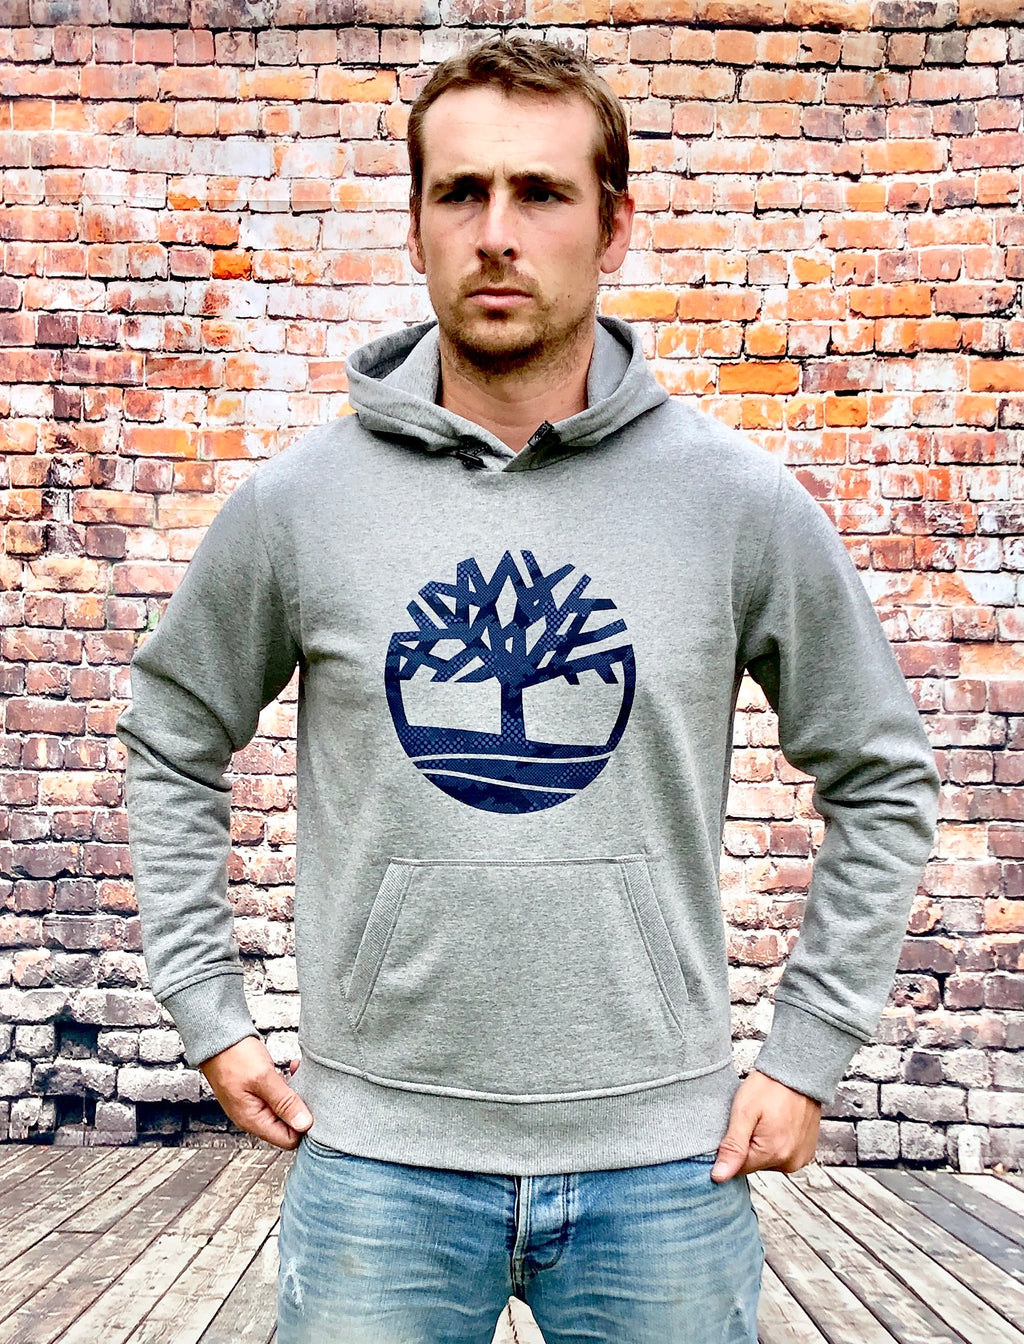 Grey thick, Timberland hoody / hooded jumper, with large, navy, printed Timberland logo on the centre chest and navy drawstrings